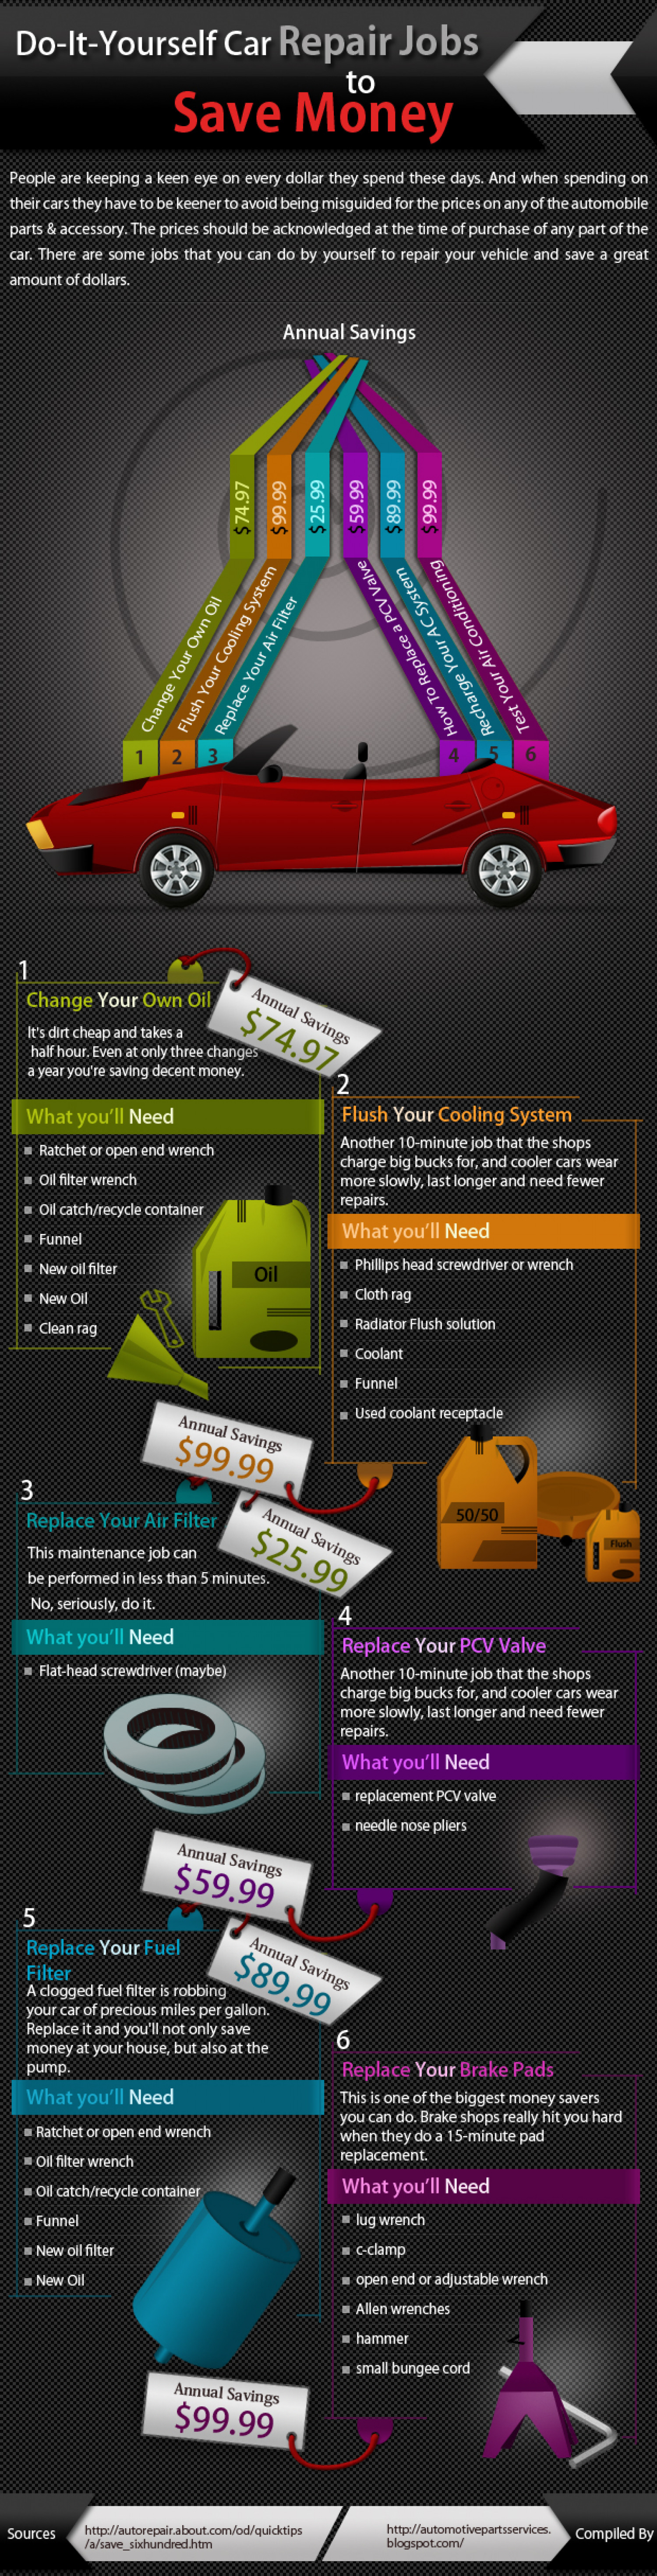 Do It Yourself Car Repair Jobs to Save Money Infographic